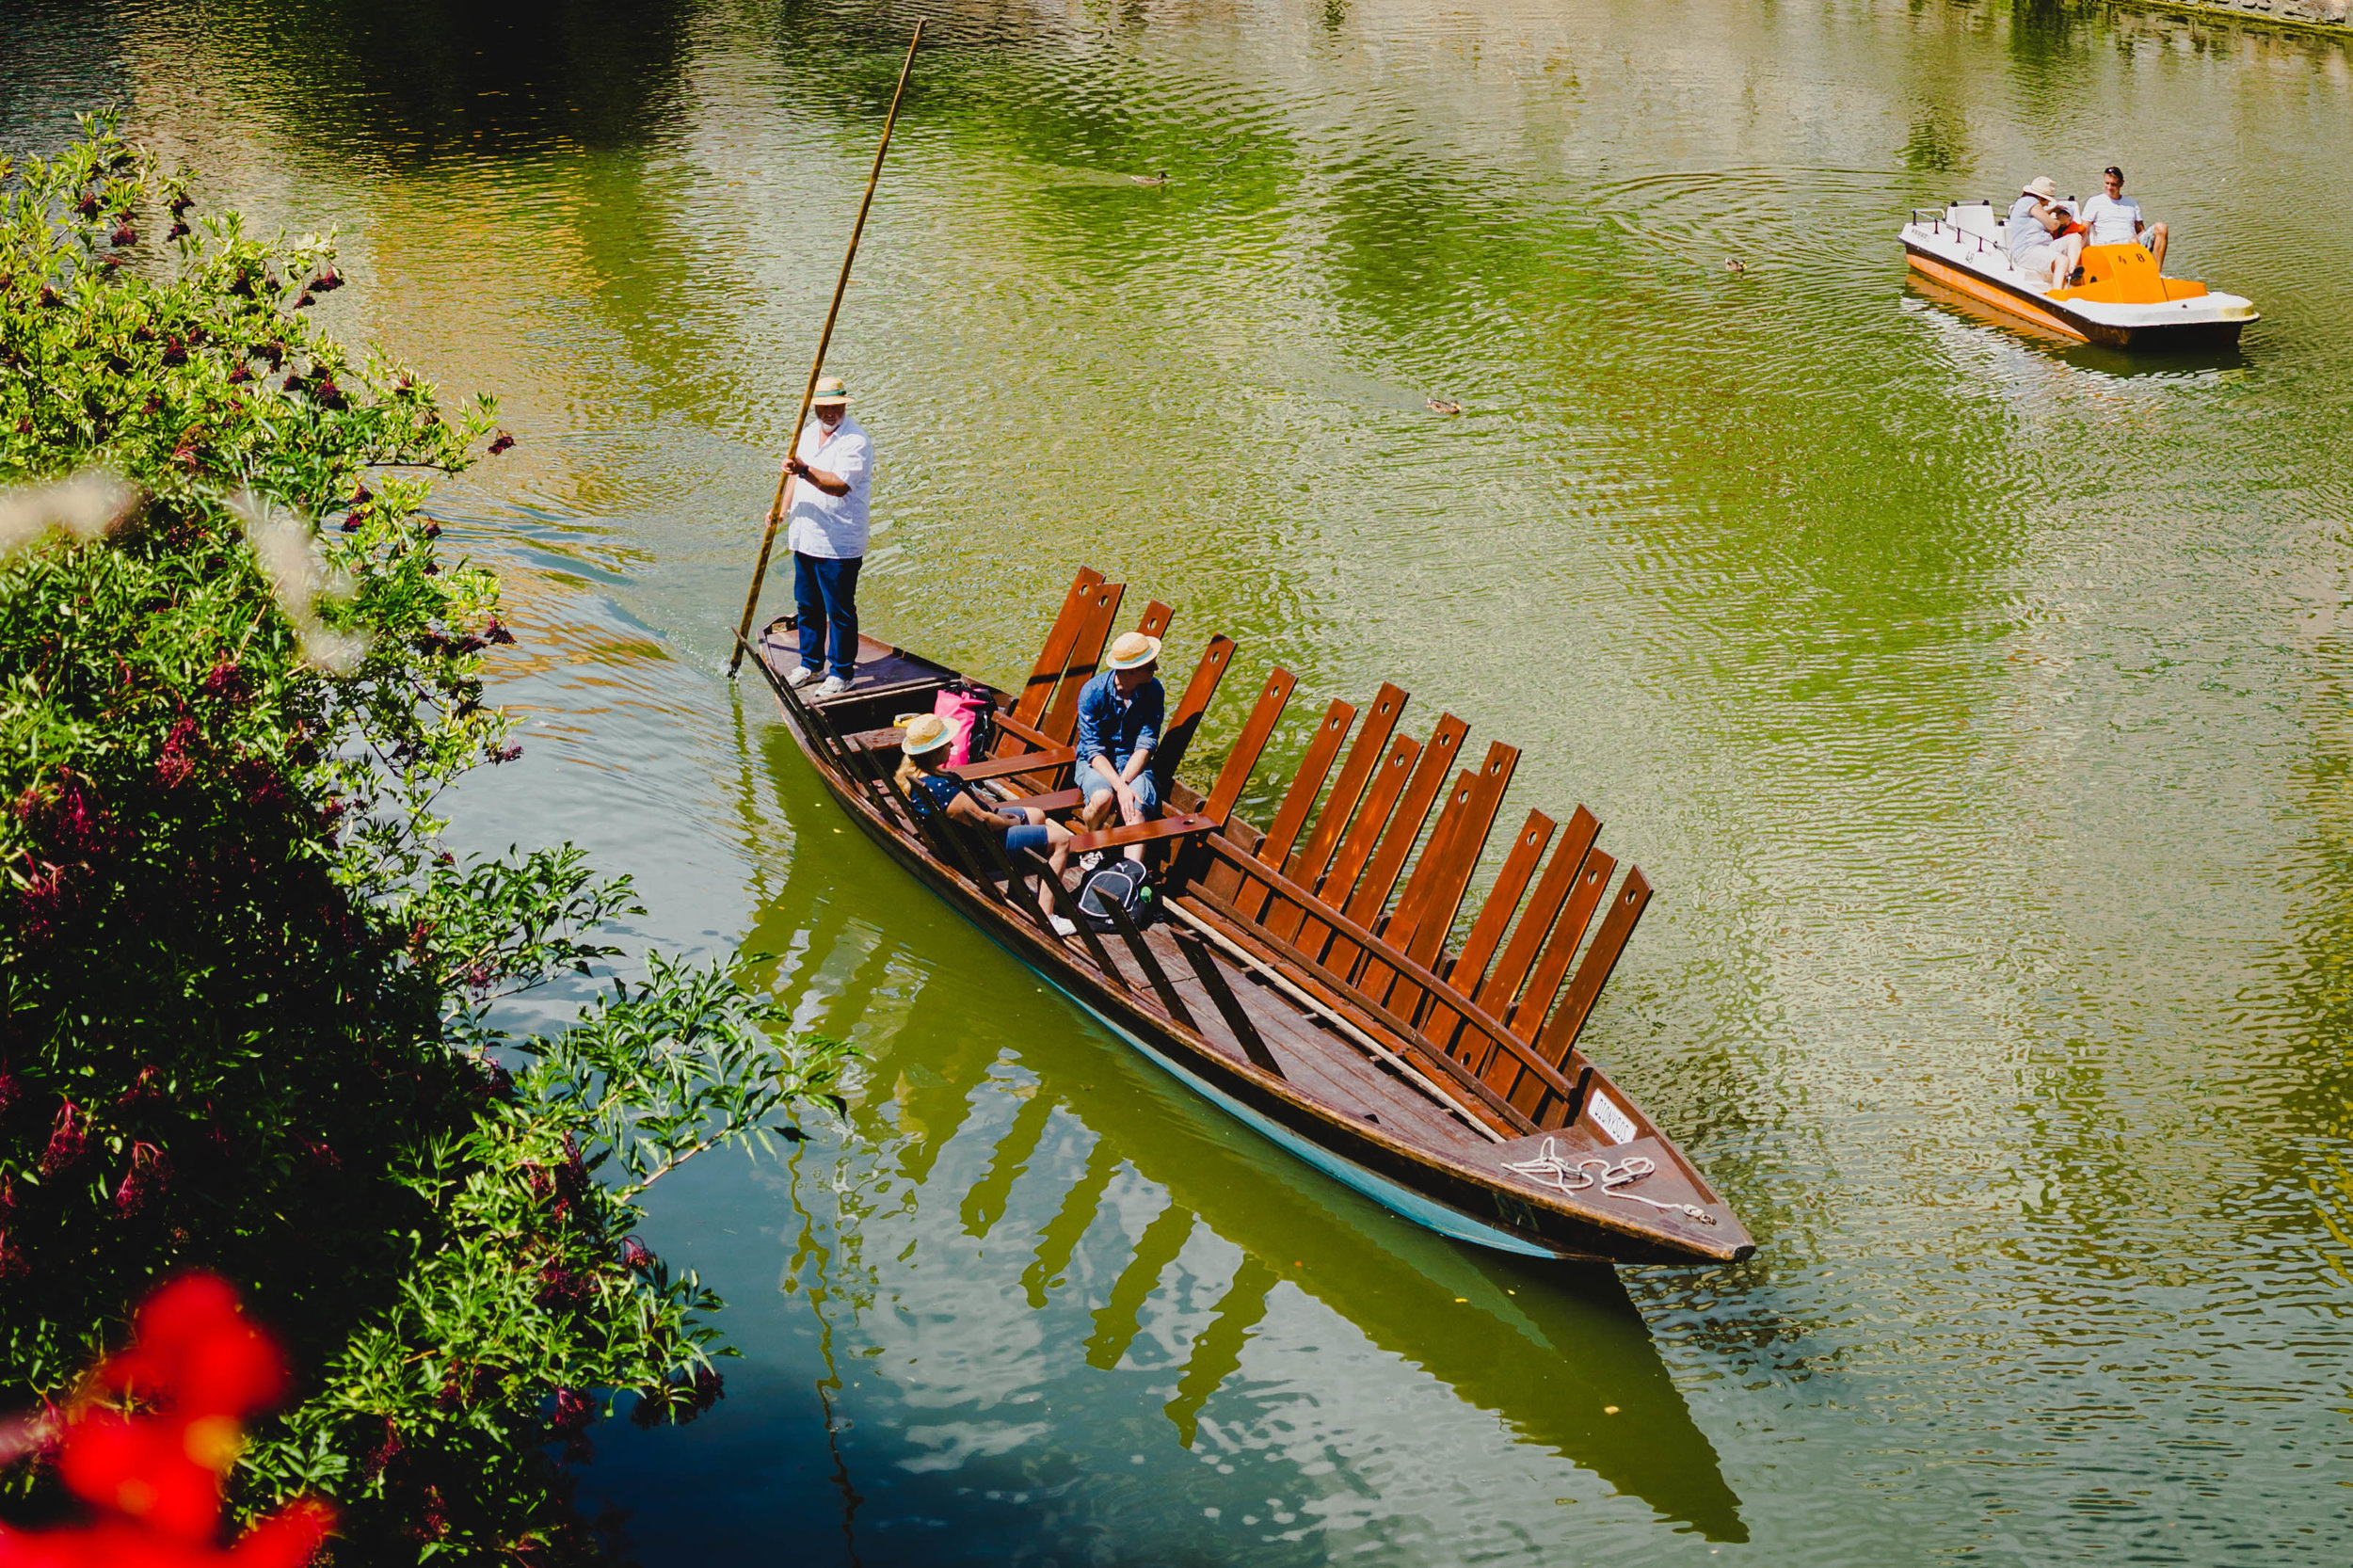 5. Take a ride on a punt boat. - On the edge of the river, you can take a punt boat tour up and down the river. If you prefer to proppell your own boat there are canoes, paddle boards and peddle boats available for rental.